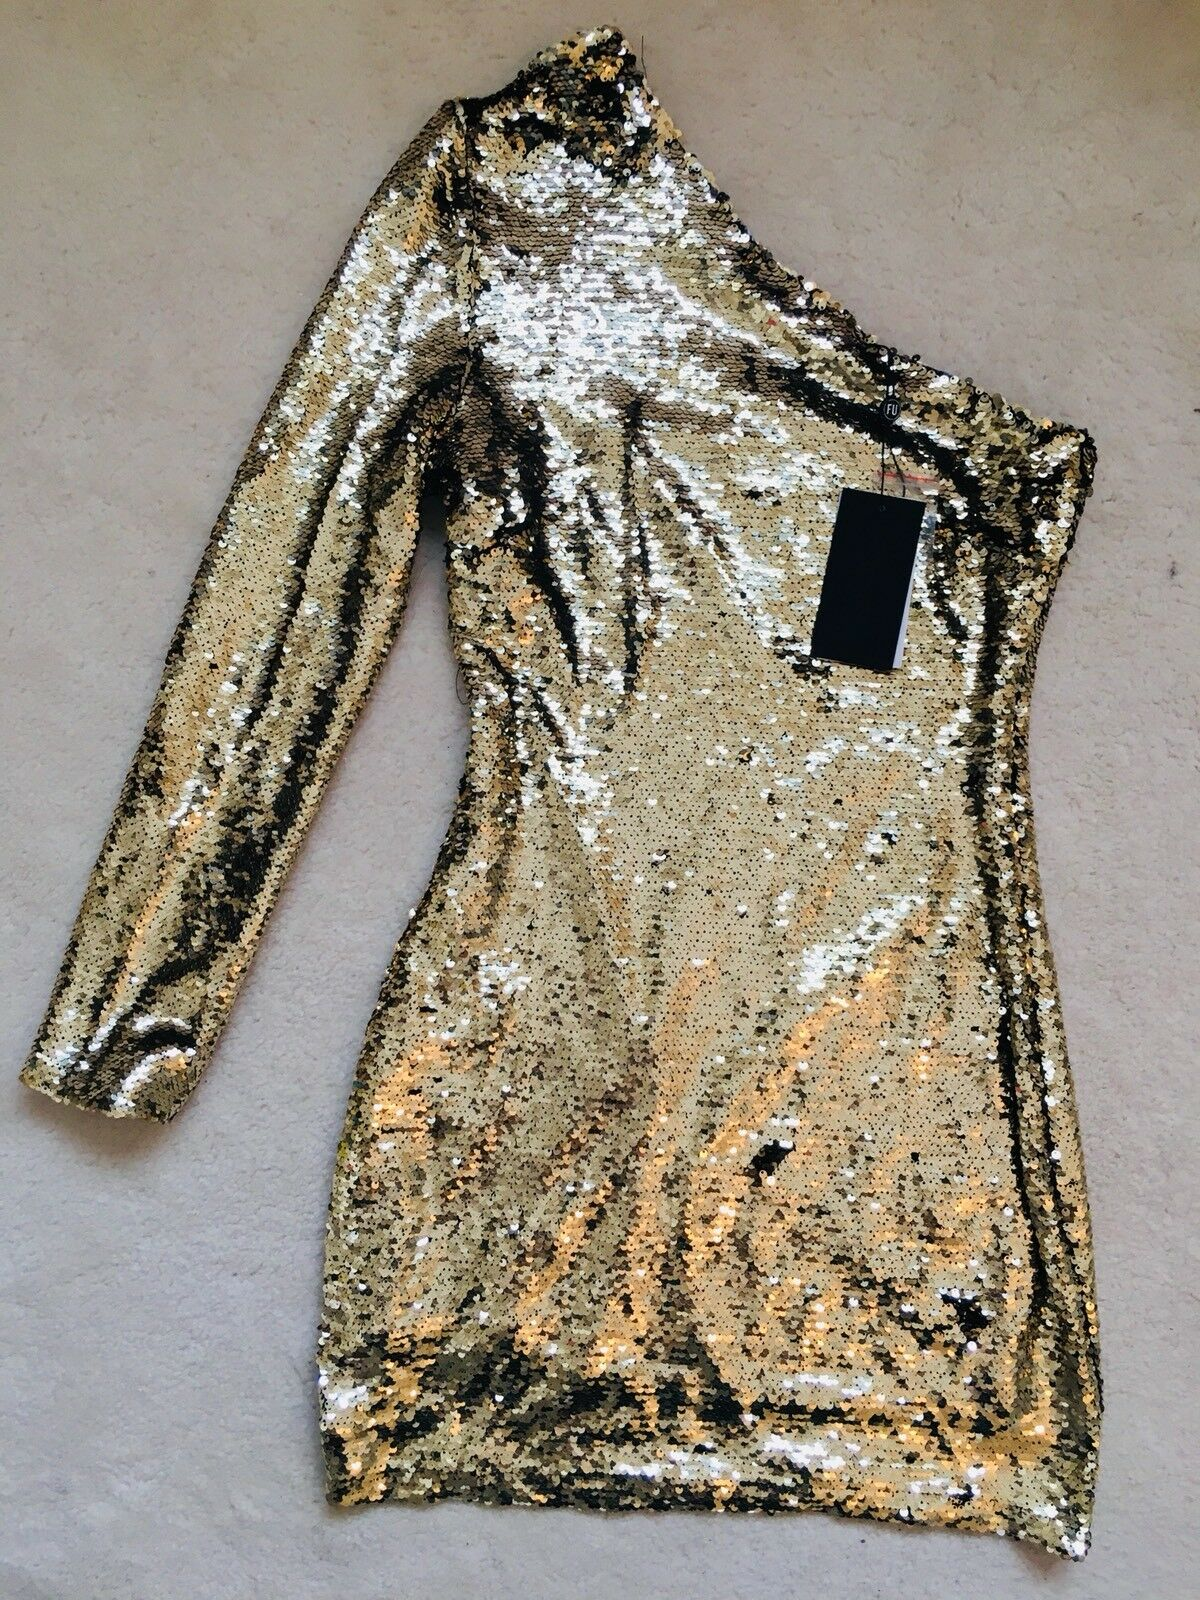 BNWT Women's gold Sequin One Shoulder Party Dress Size By Fashion Union